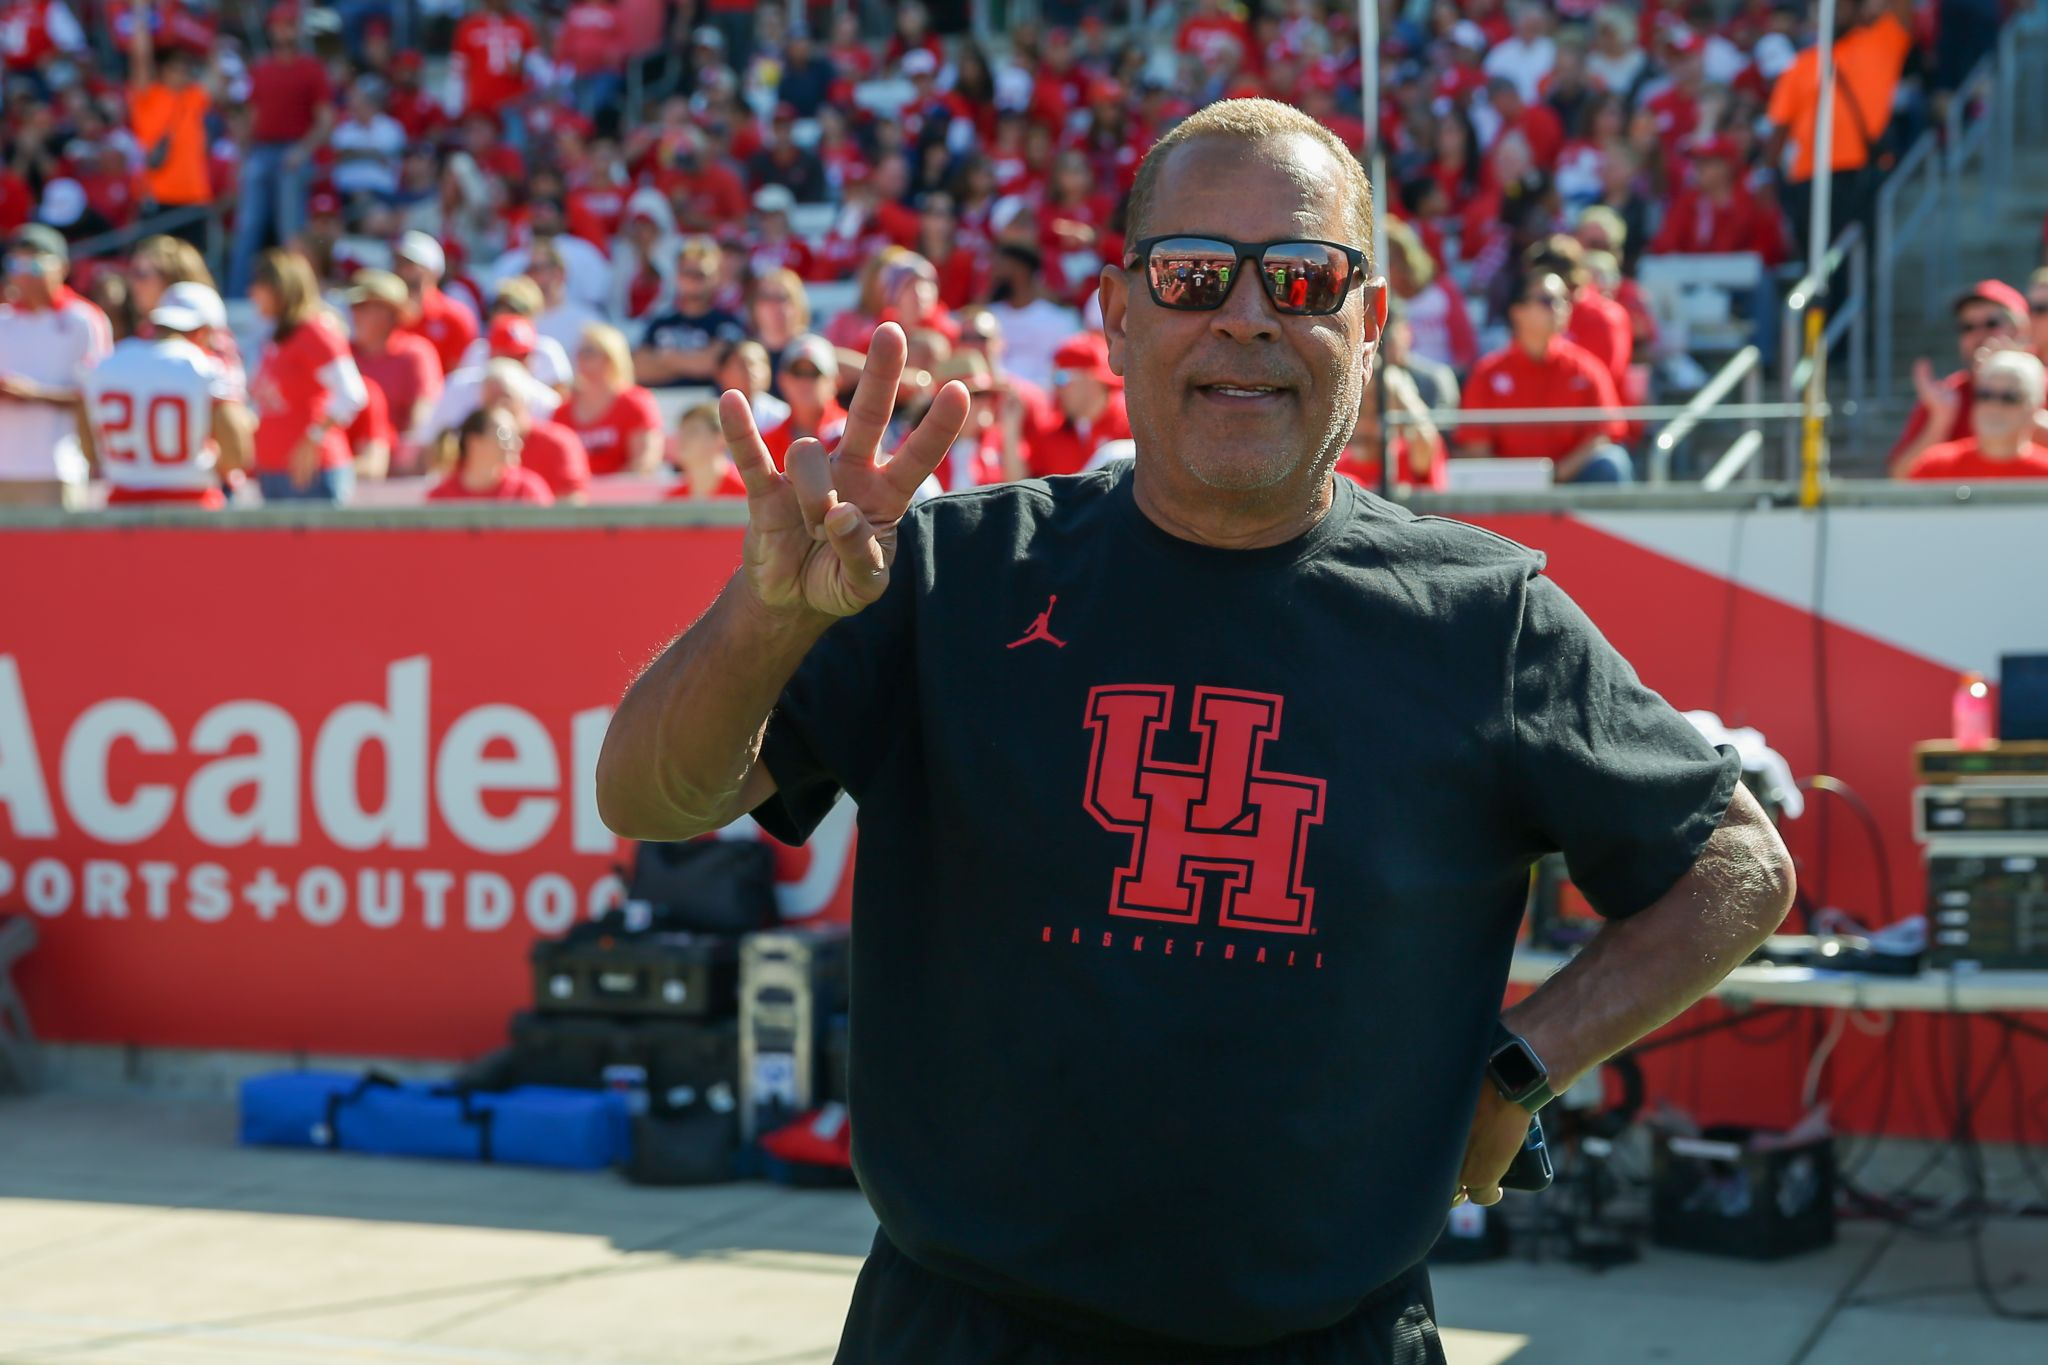 Cougars Mailbag: Repeat after me ... UH is a basketball school